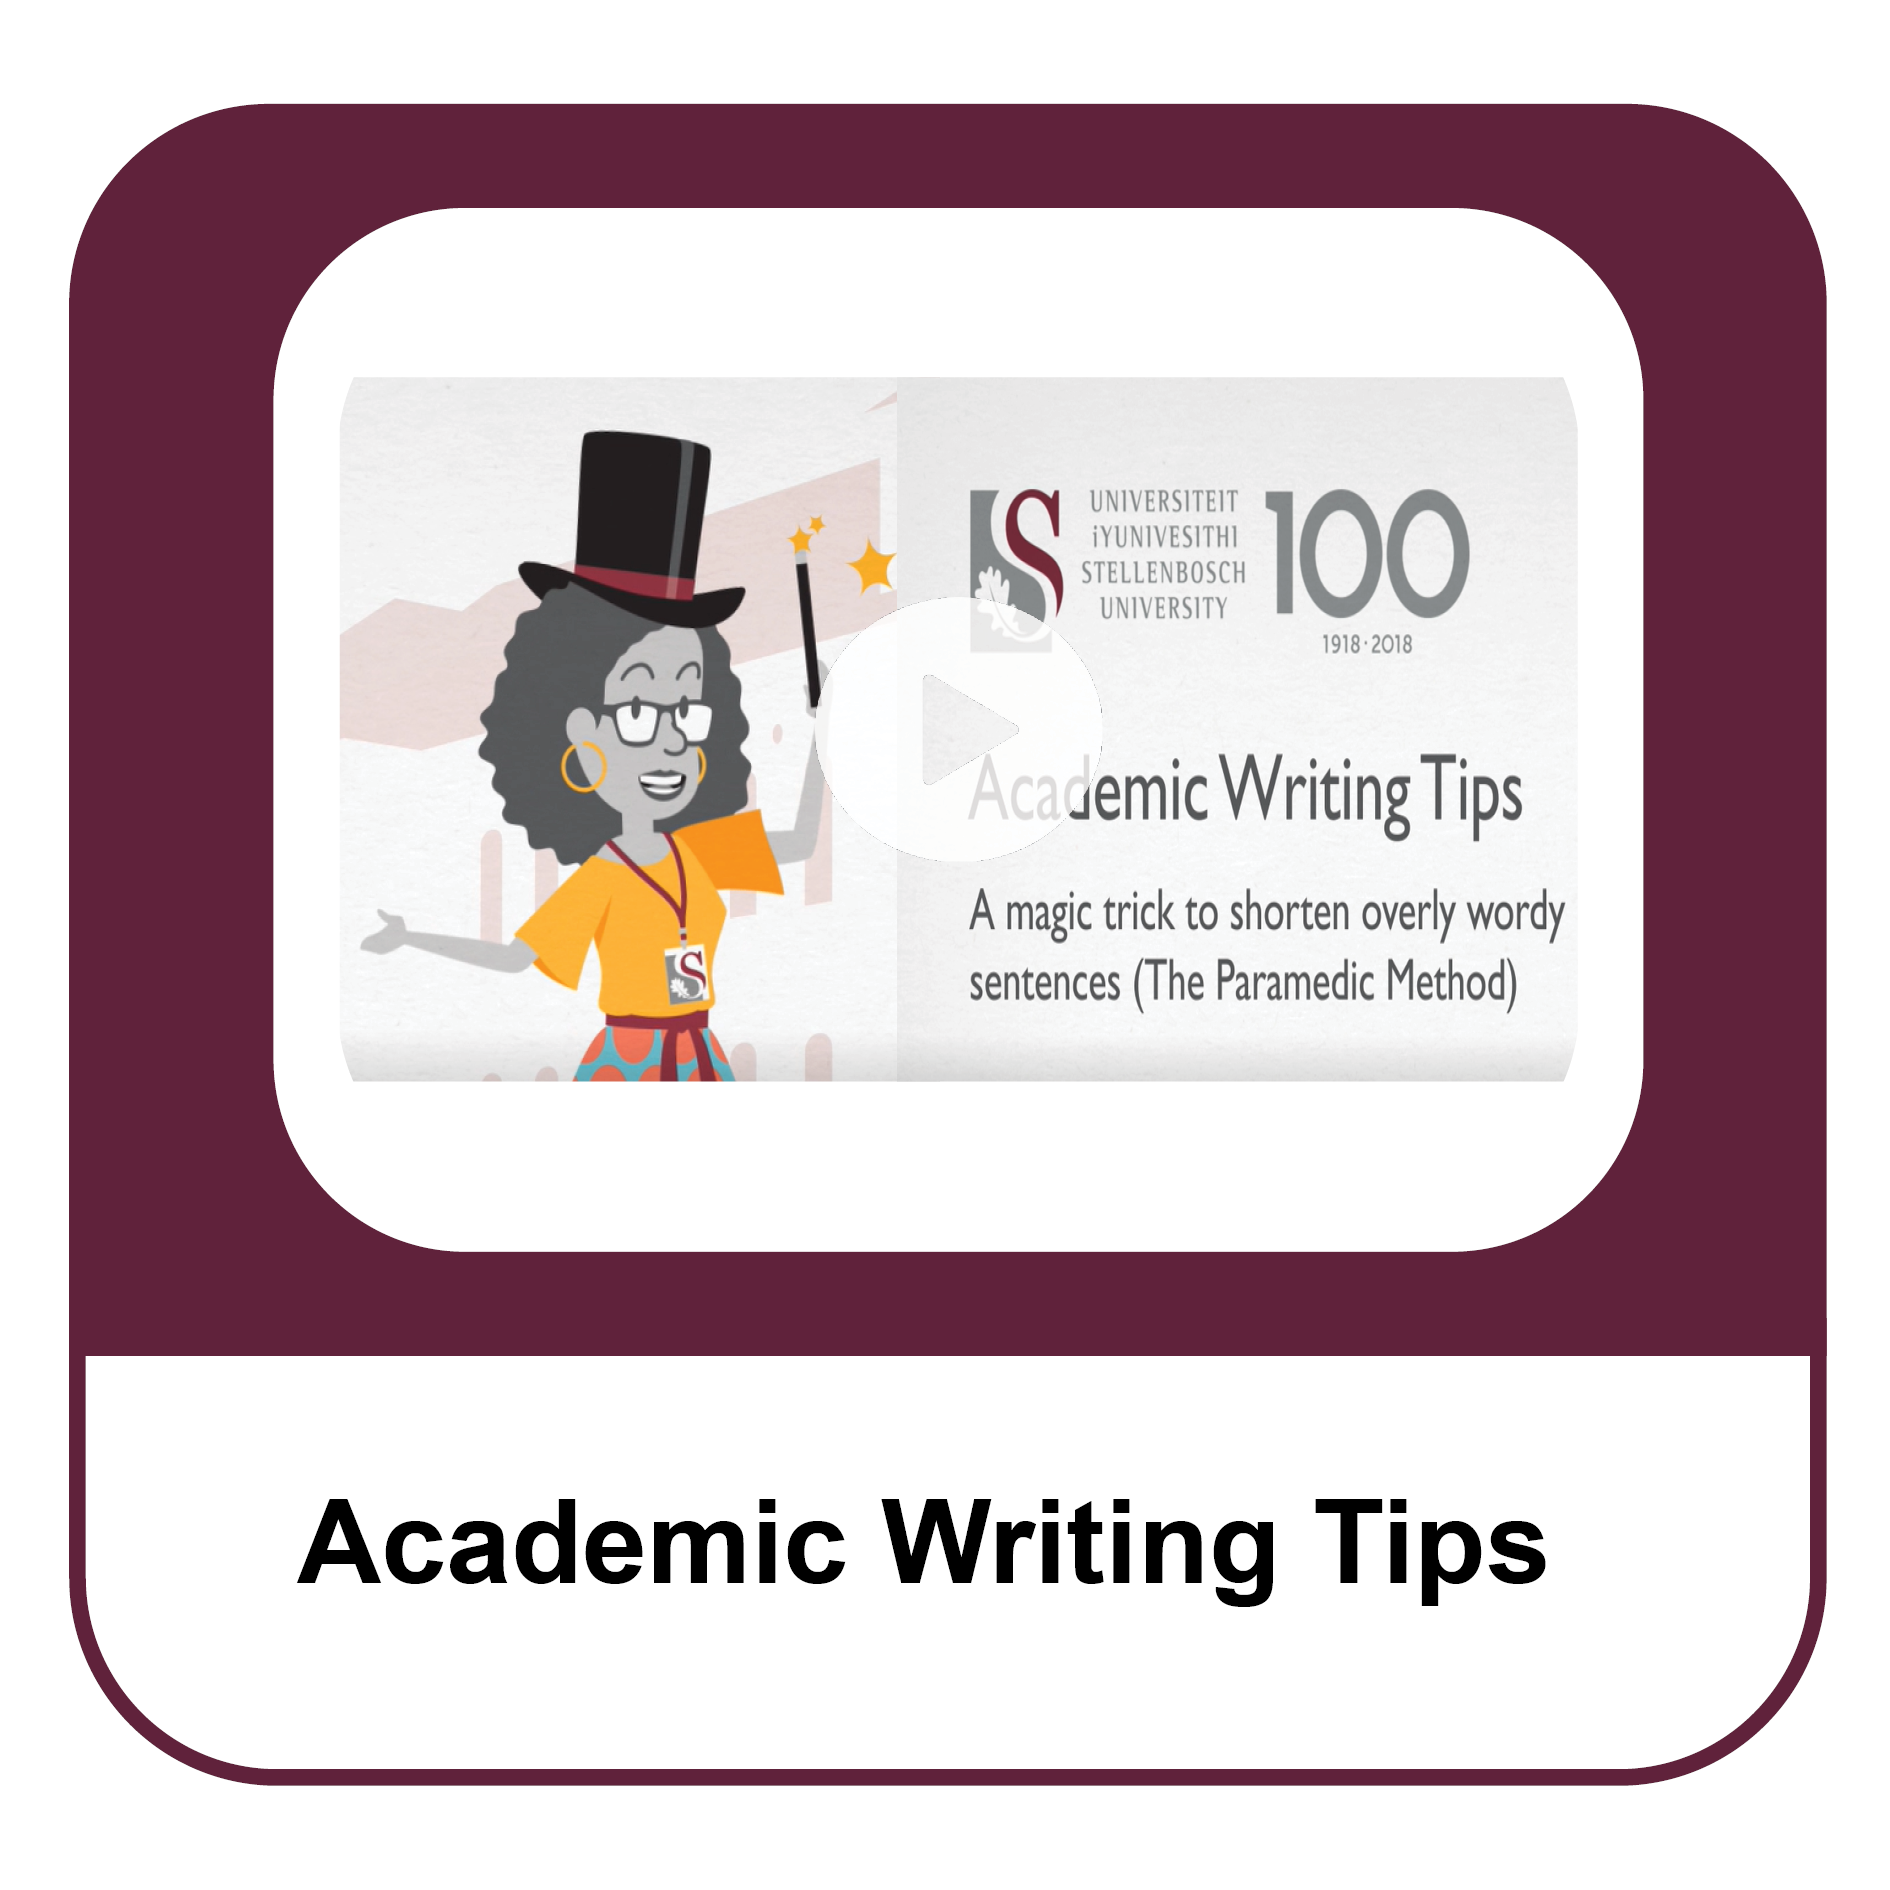 Academic writing tips updated icon resources.png